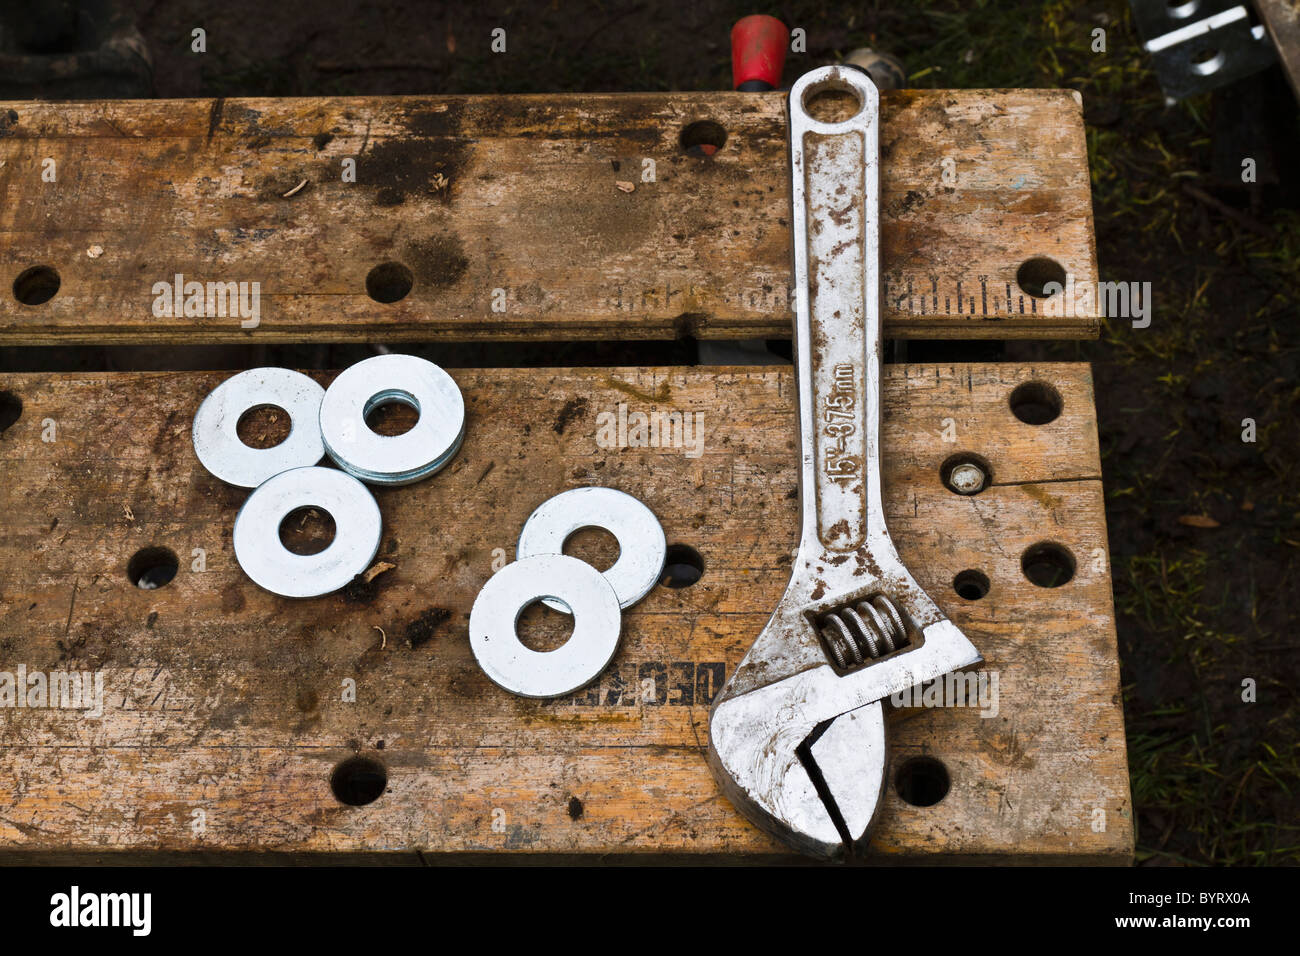 Adjustable spanner and washers on a work bench - Stock Image